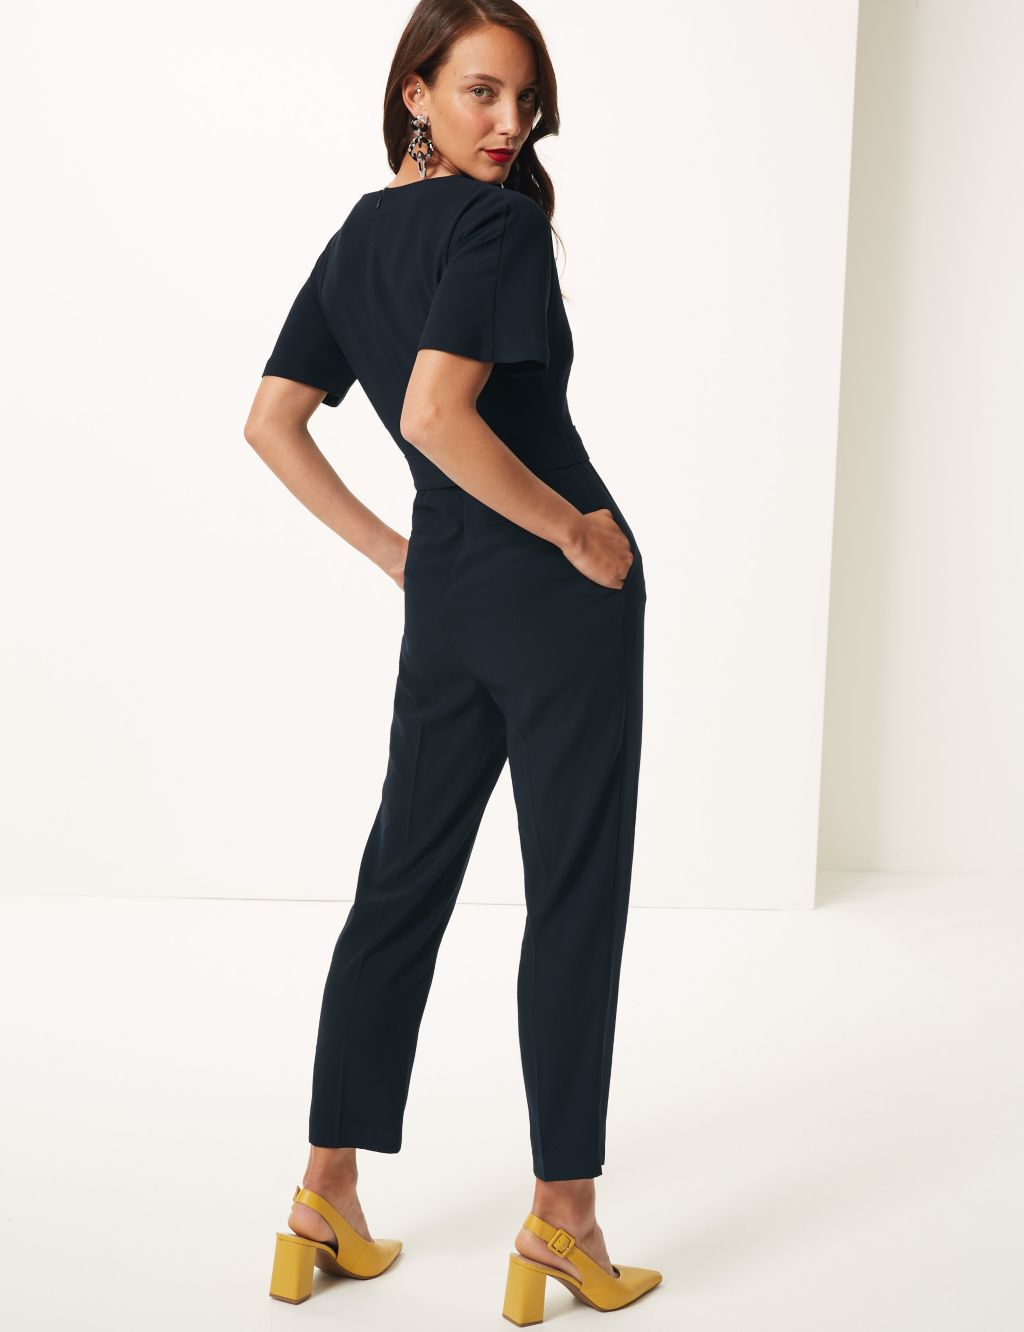 m&s short sleeve jumpsuit navy £45